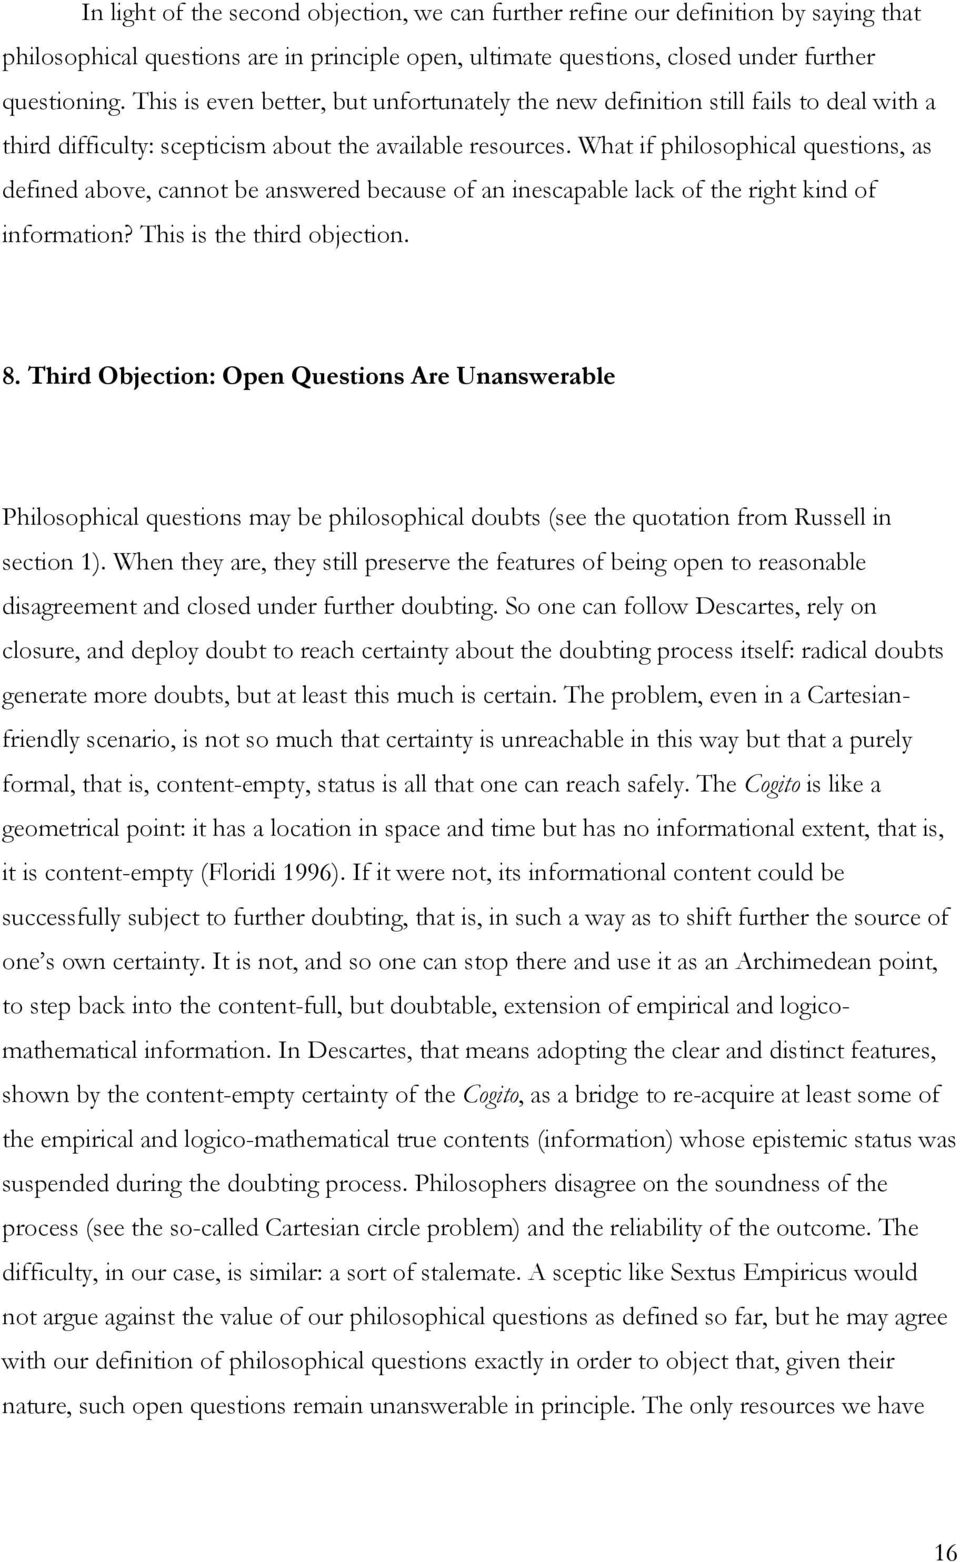 What if philosophical questions, as defined above, cannot be answered because of an inescapable lack of the right kind of information? This is the third objection. 8.